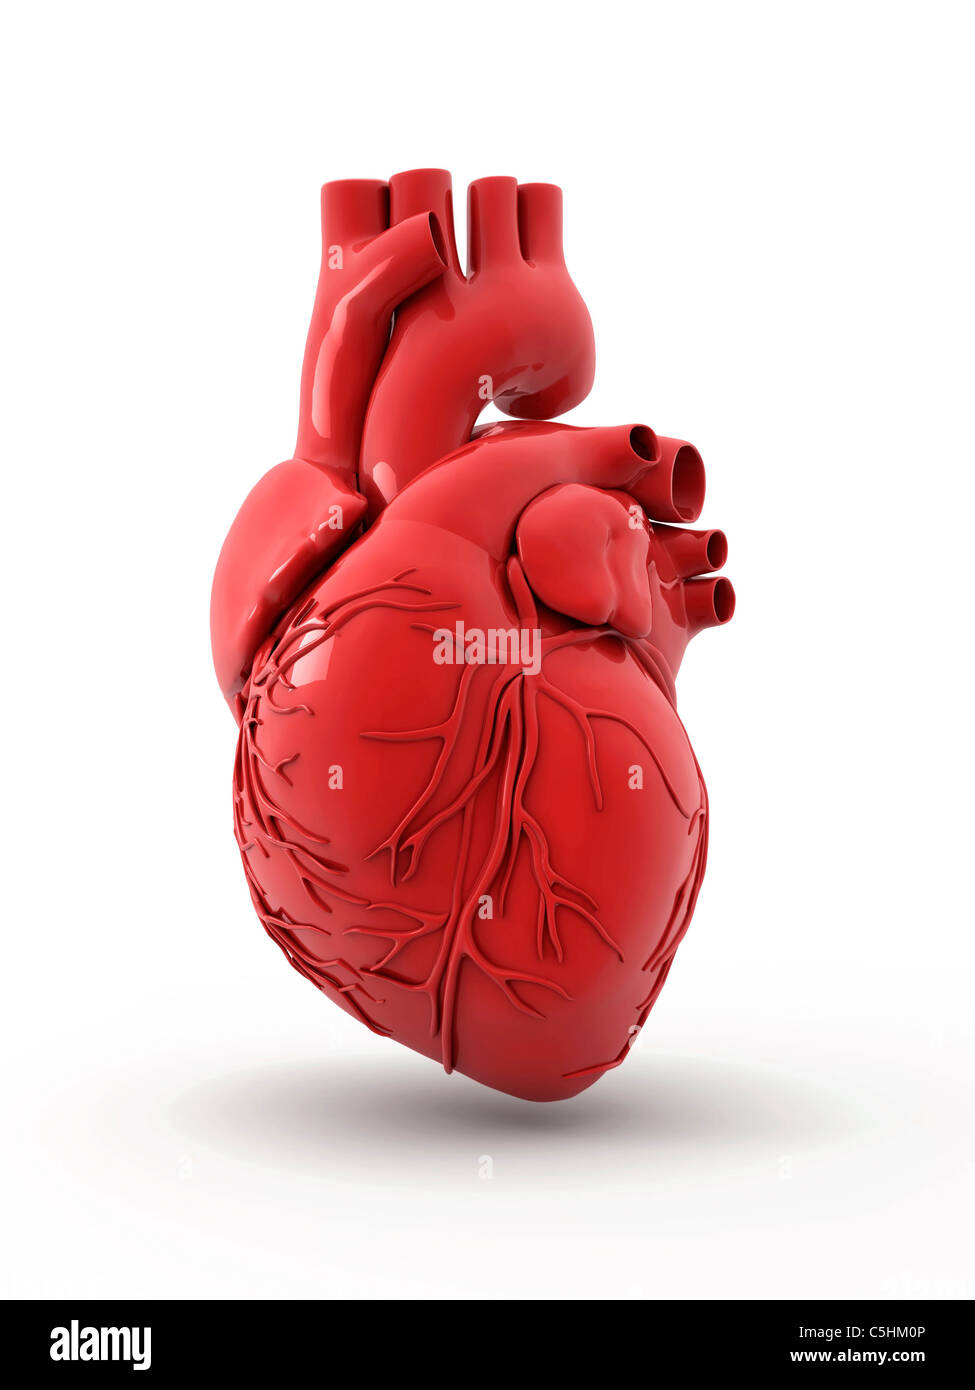 Heart with coronary vessels - Stock Image